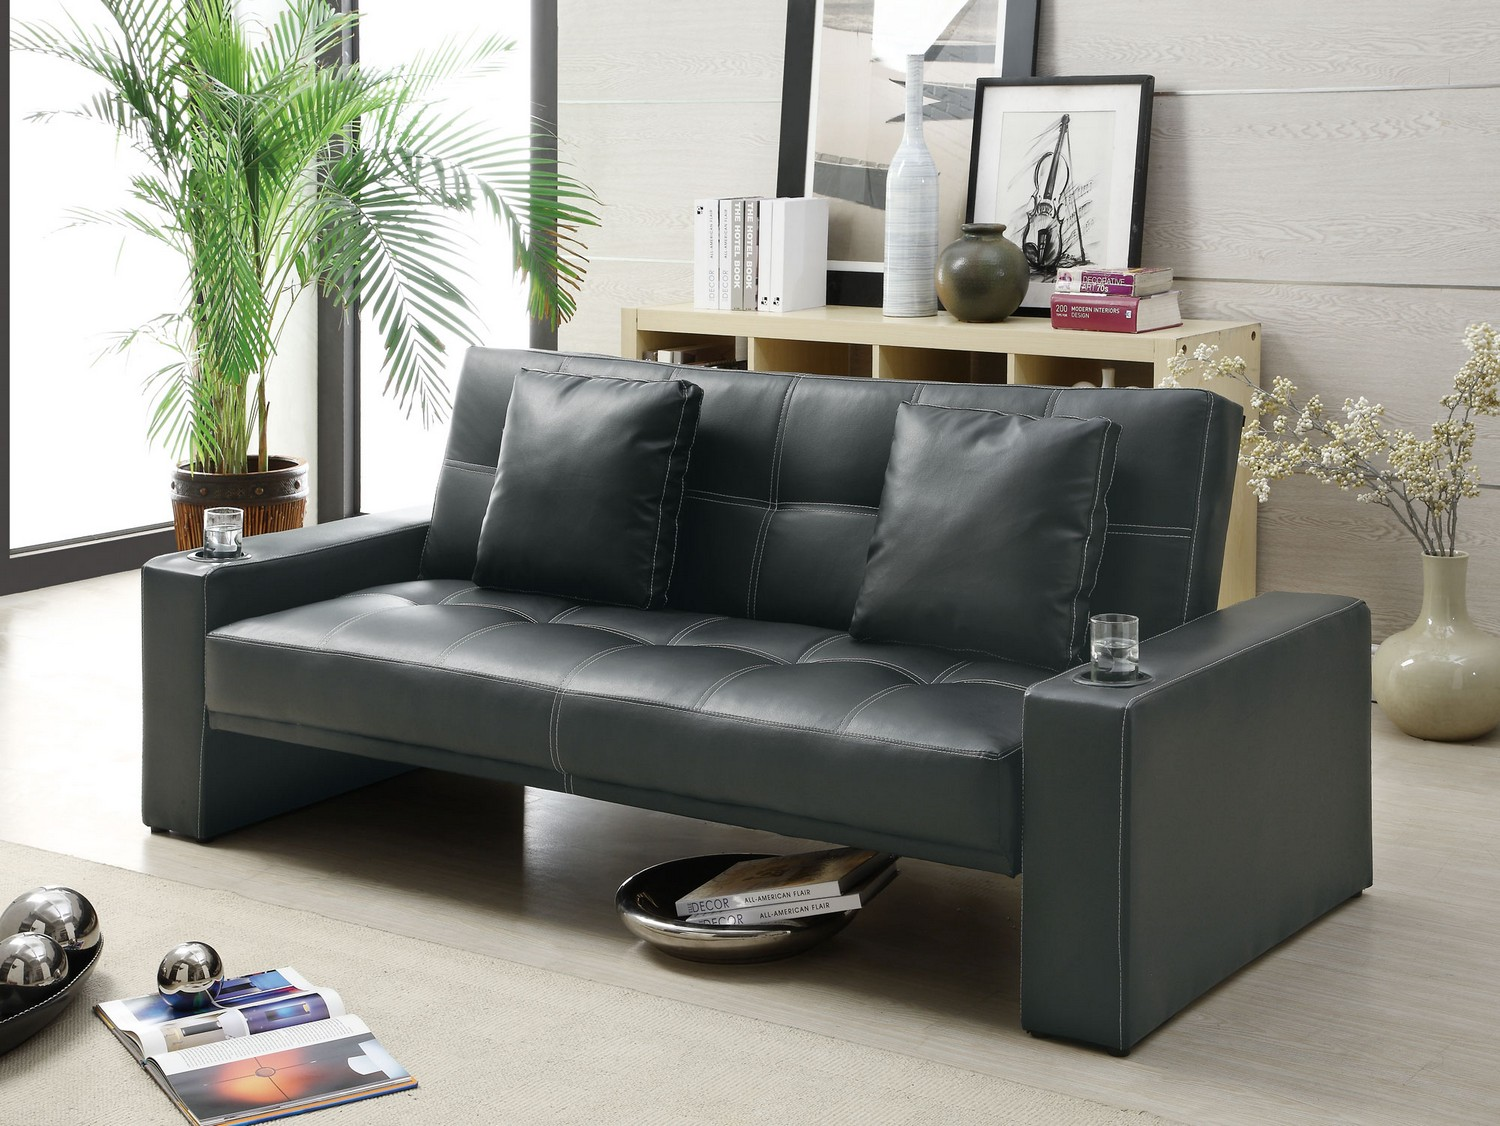 Coaster 300125 Sofa Bed - Black